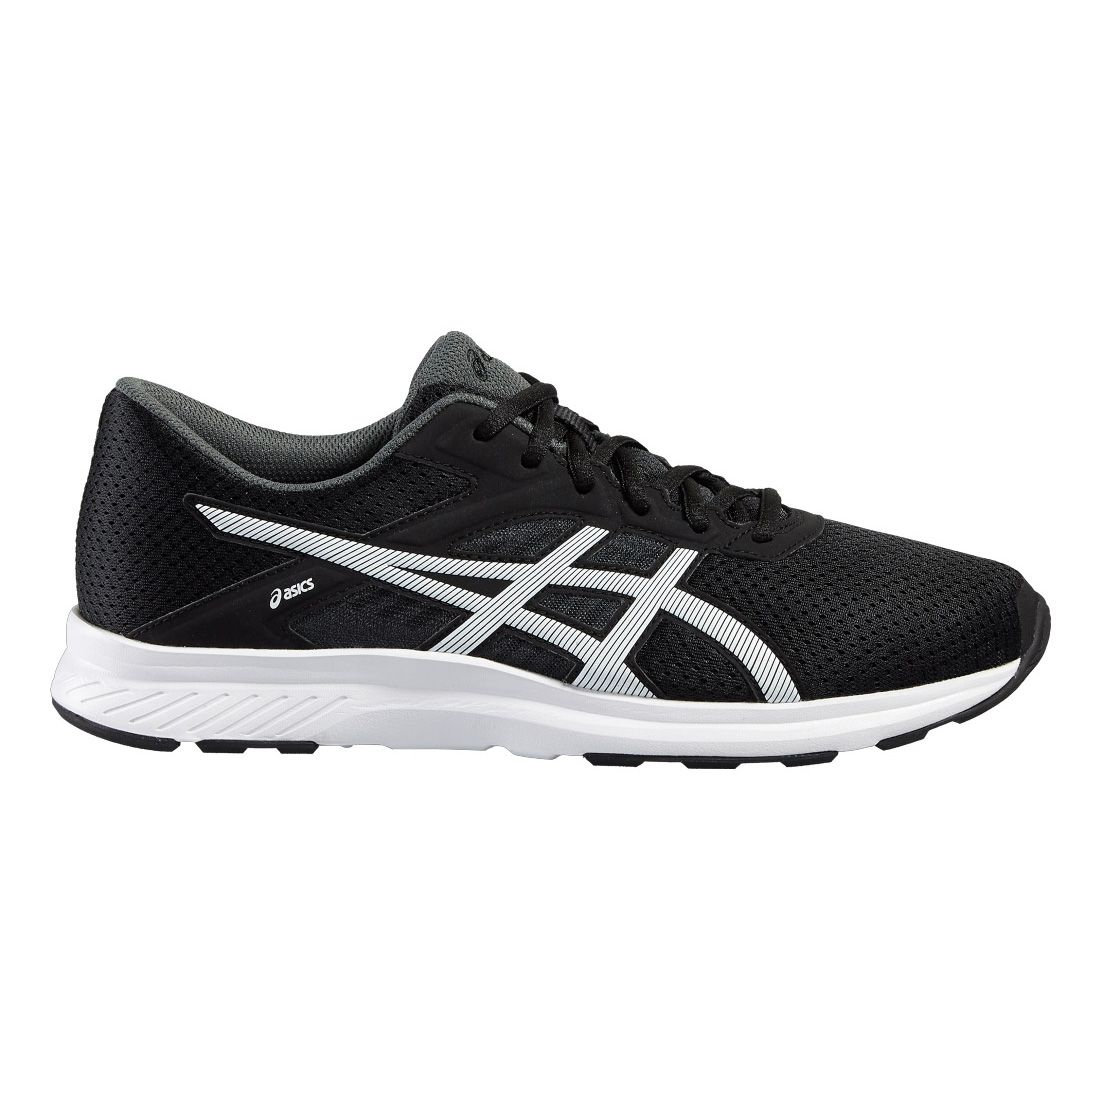 Mens Cool Running Shoes